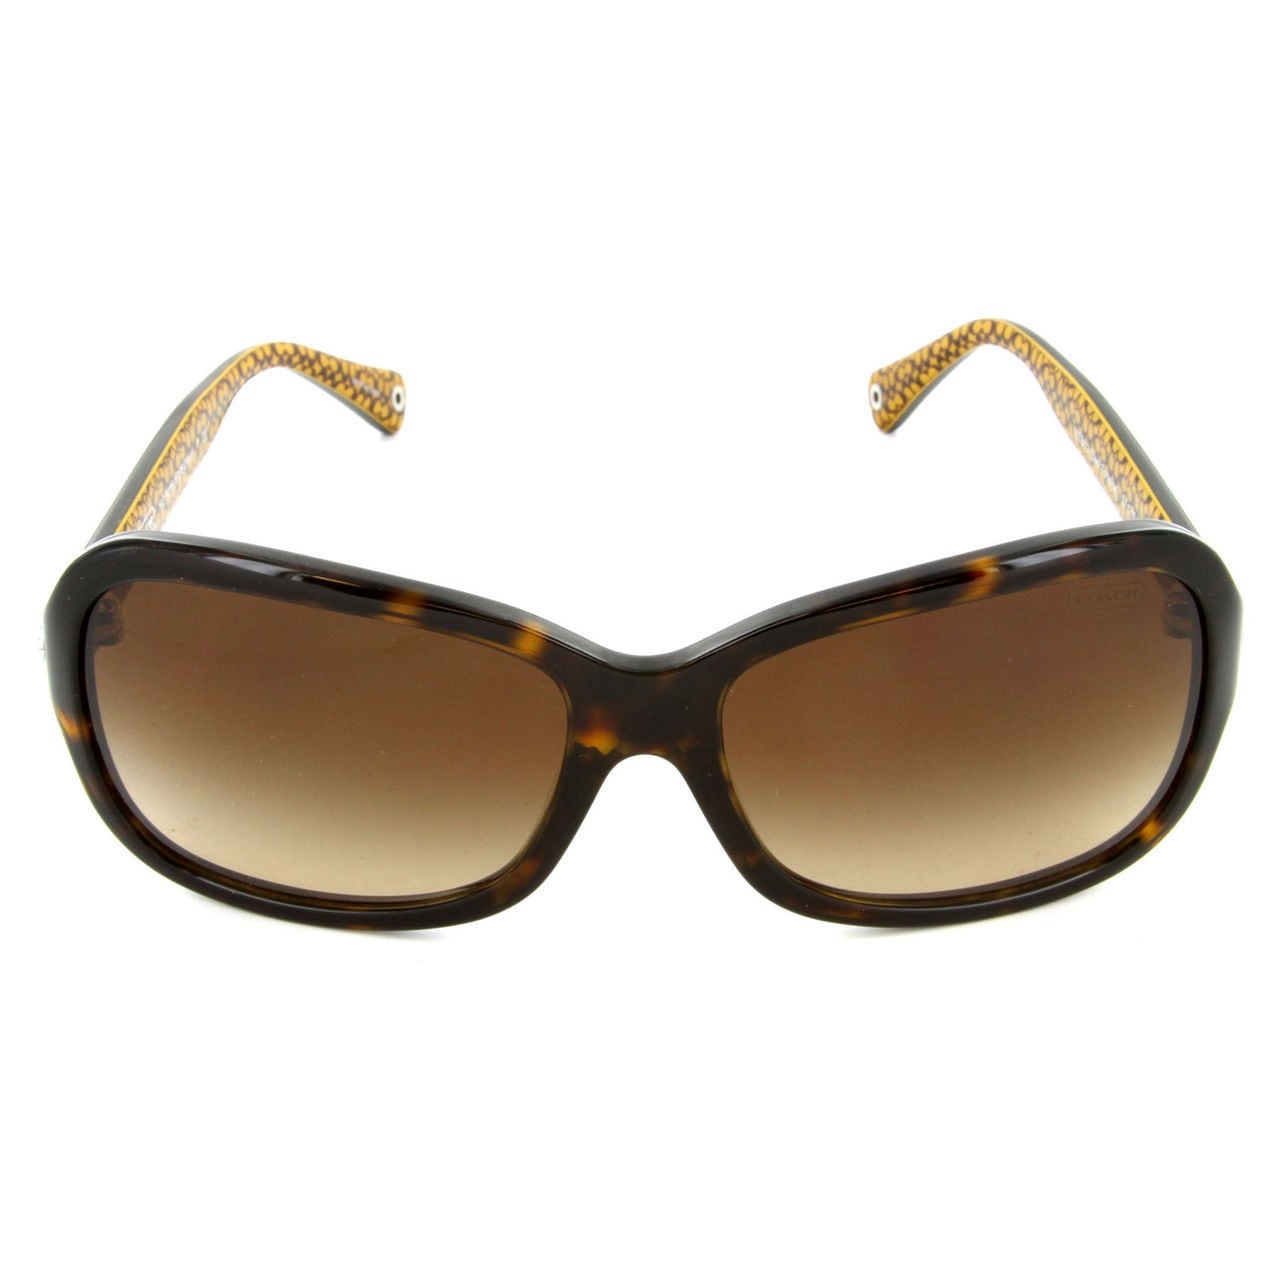 8572948658de Shop Coach Women's HC8016 L008 Ciara 503313 Plastic Rectangle Sunglasses -  Tortoise - Free Shipping Today - Overstock - 10324939